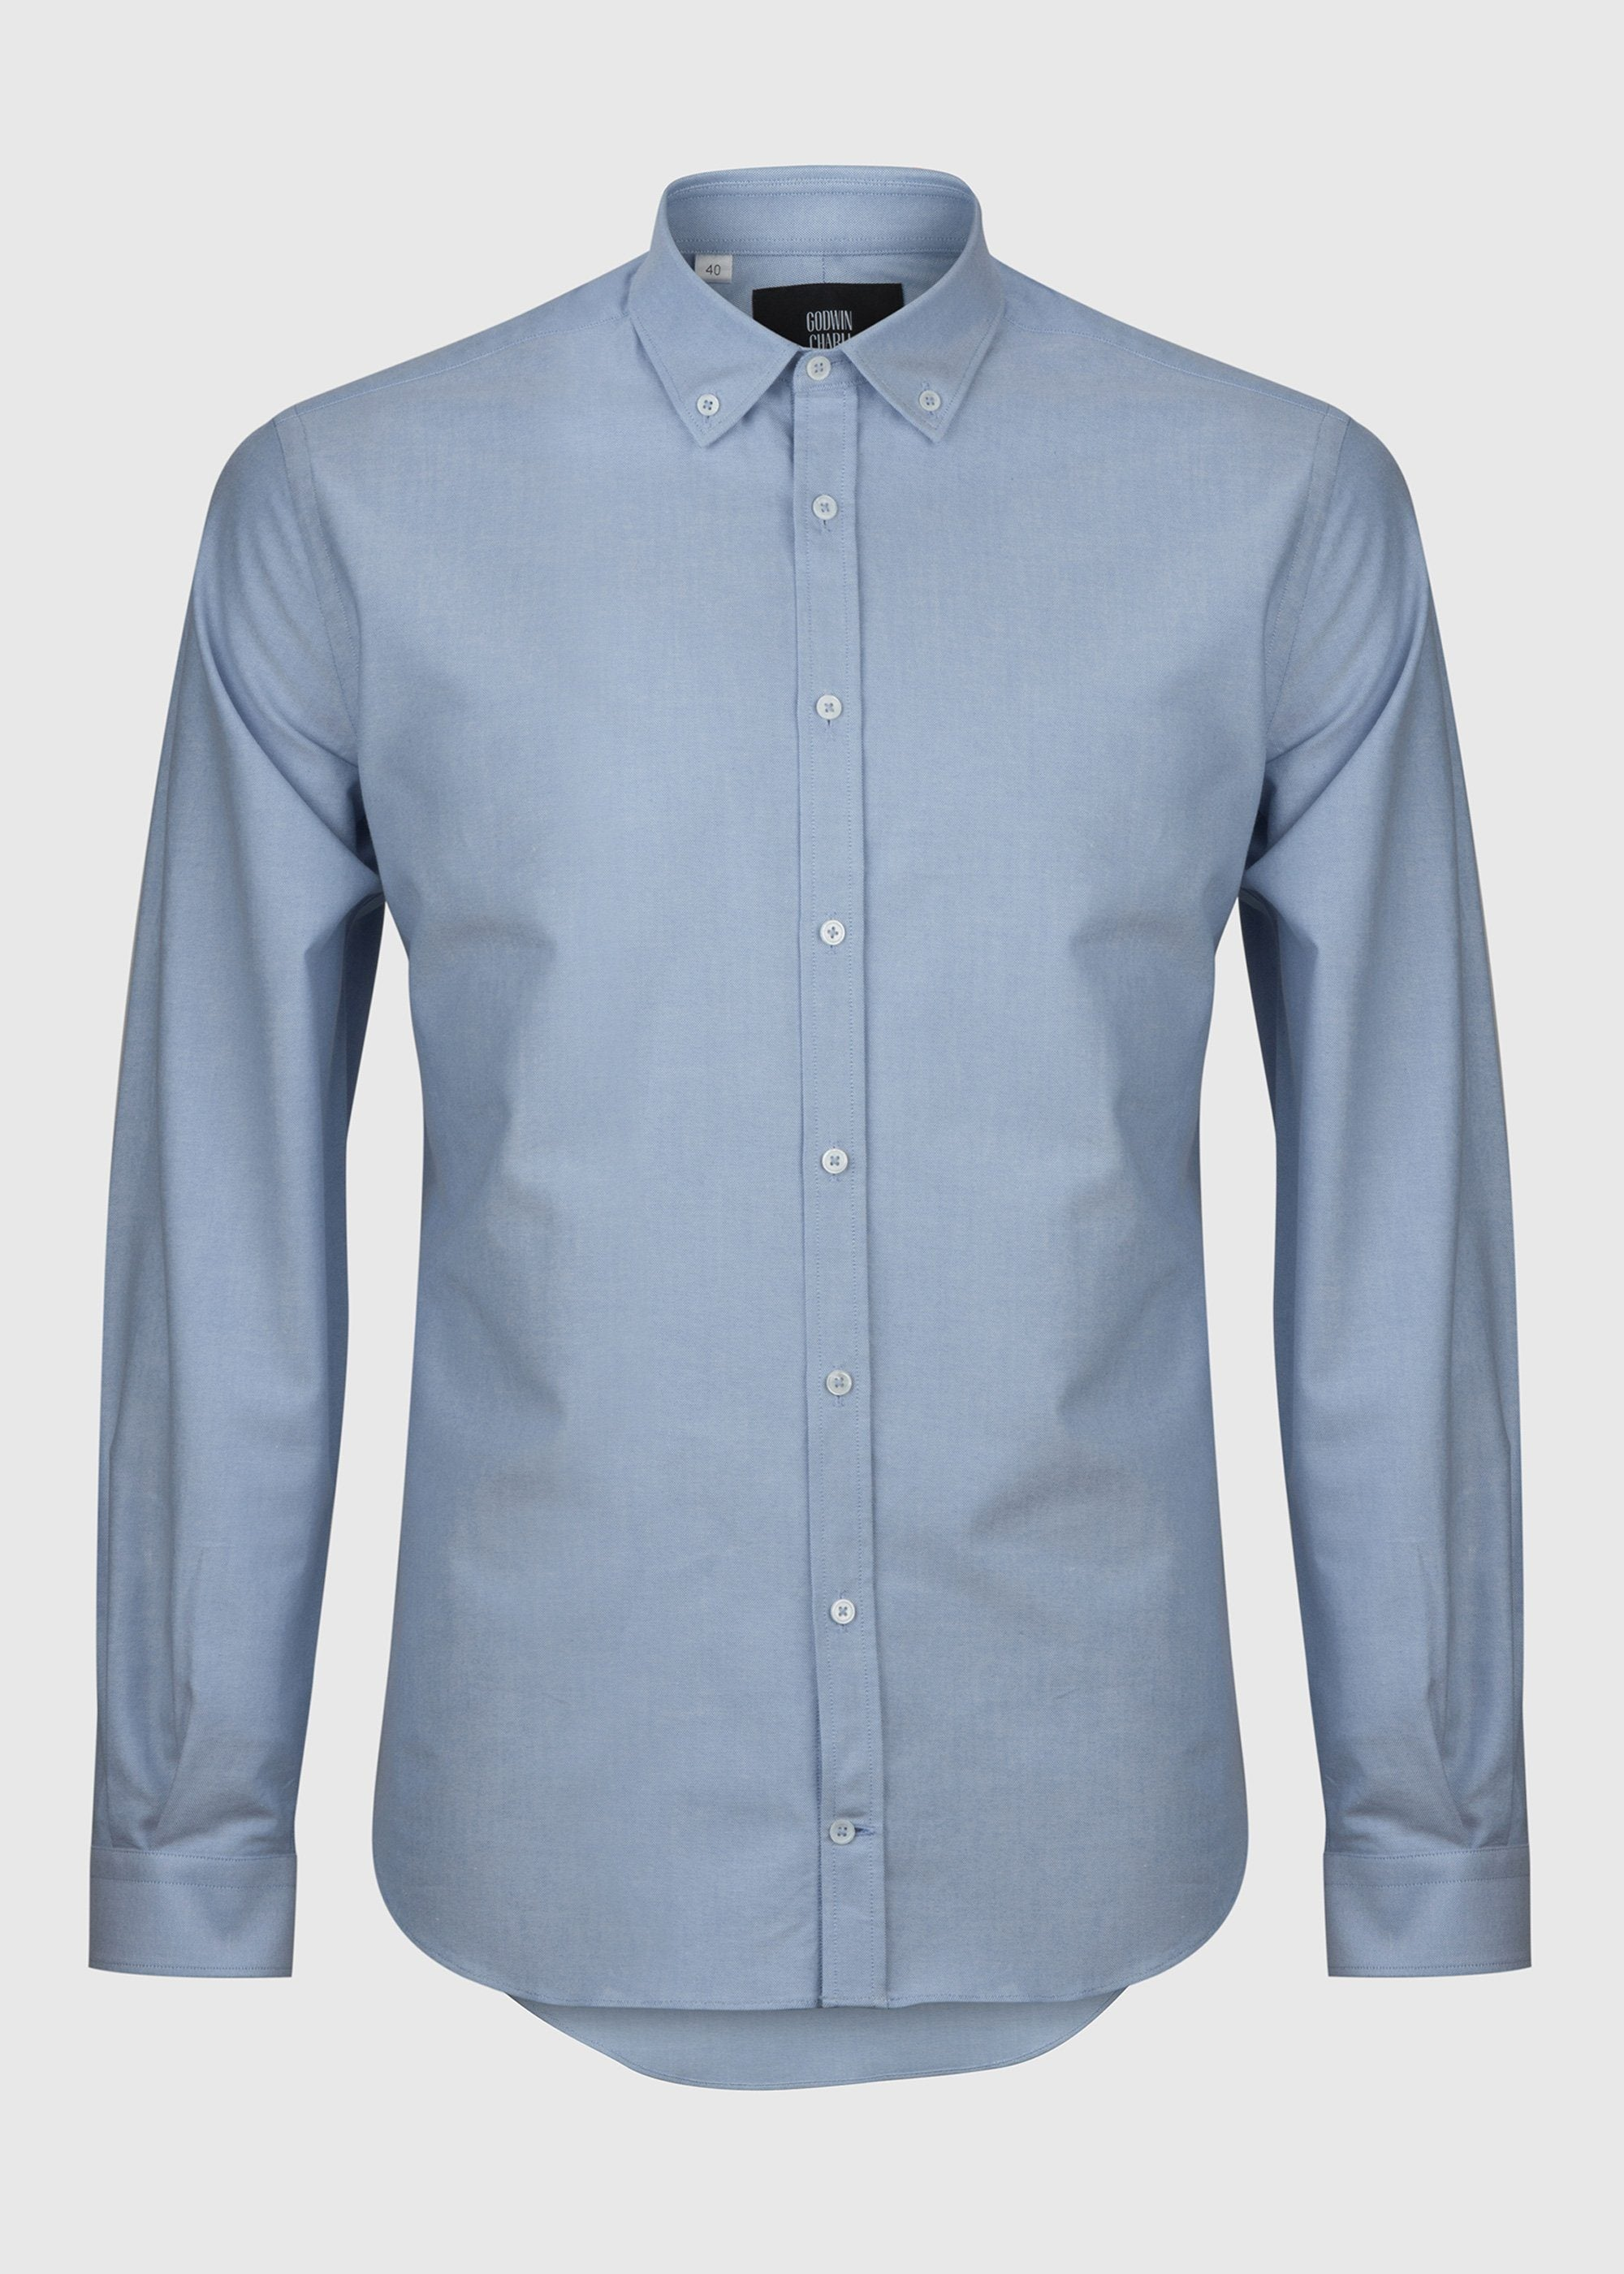 Karlis - Light Blue Oxford